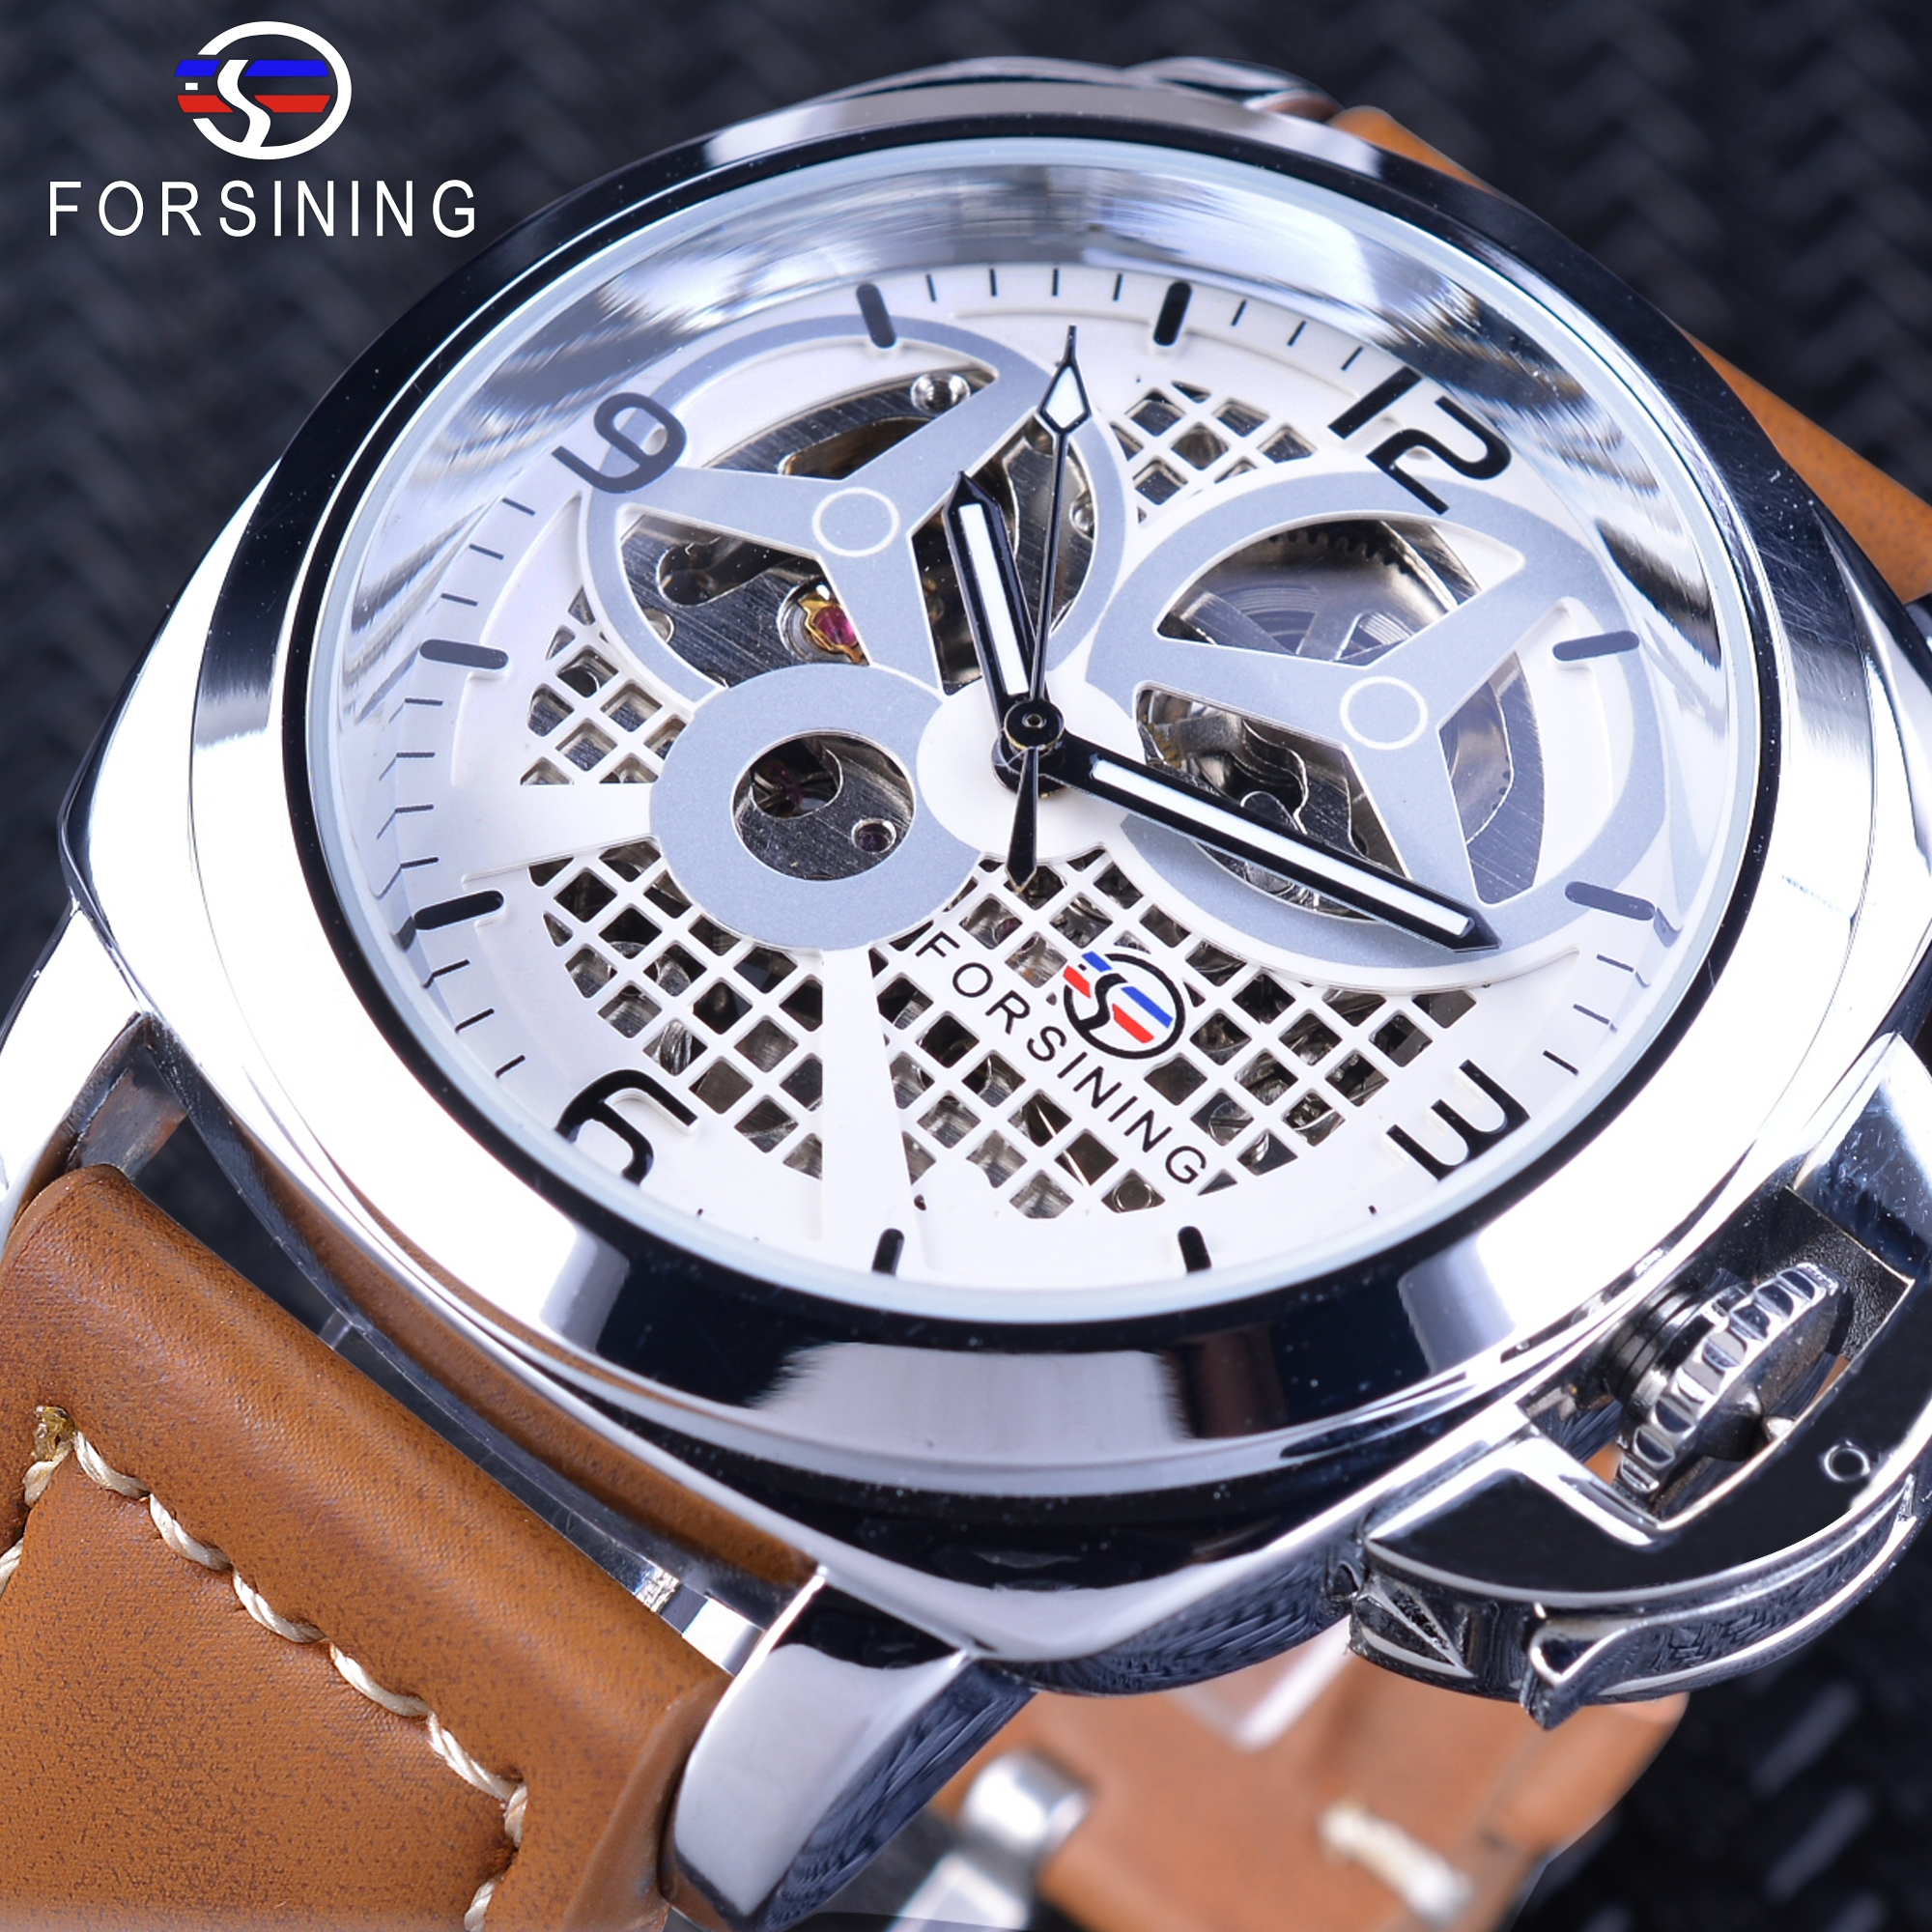 Forsining Brown Genuine Leather Belt Military Pilot Series Men Creative Sport Watches Fashion Automatic Skeleton Wristwatches